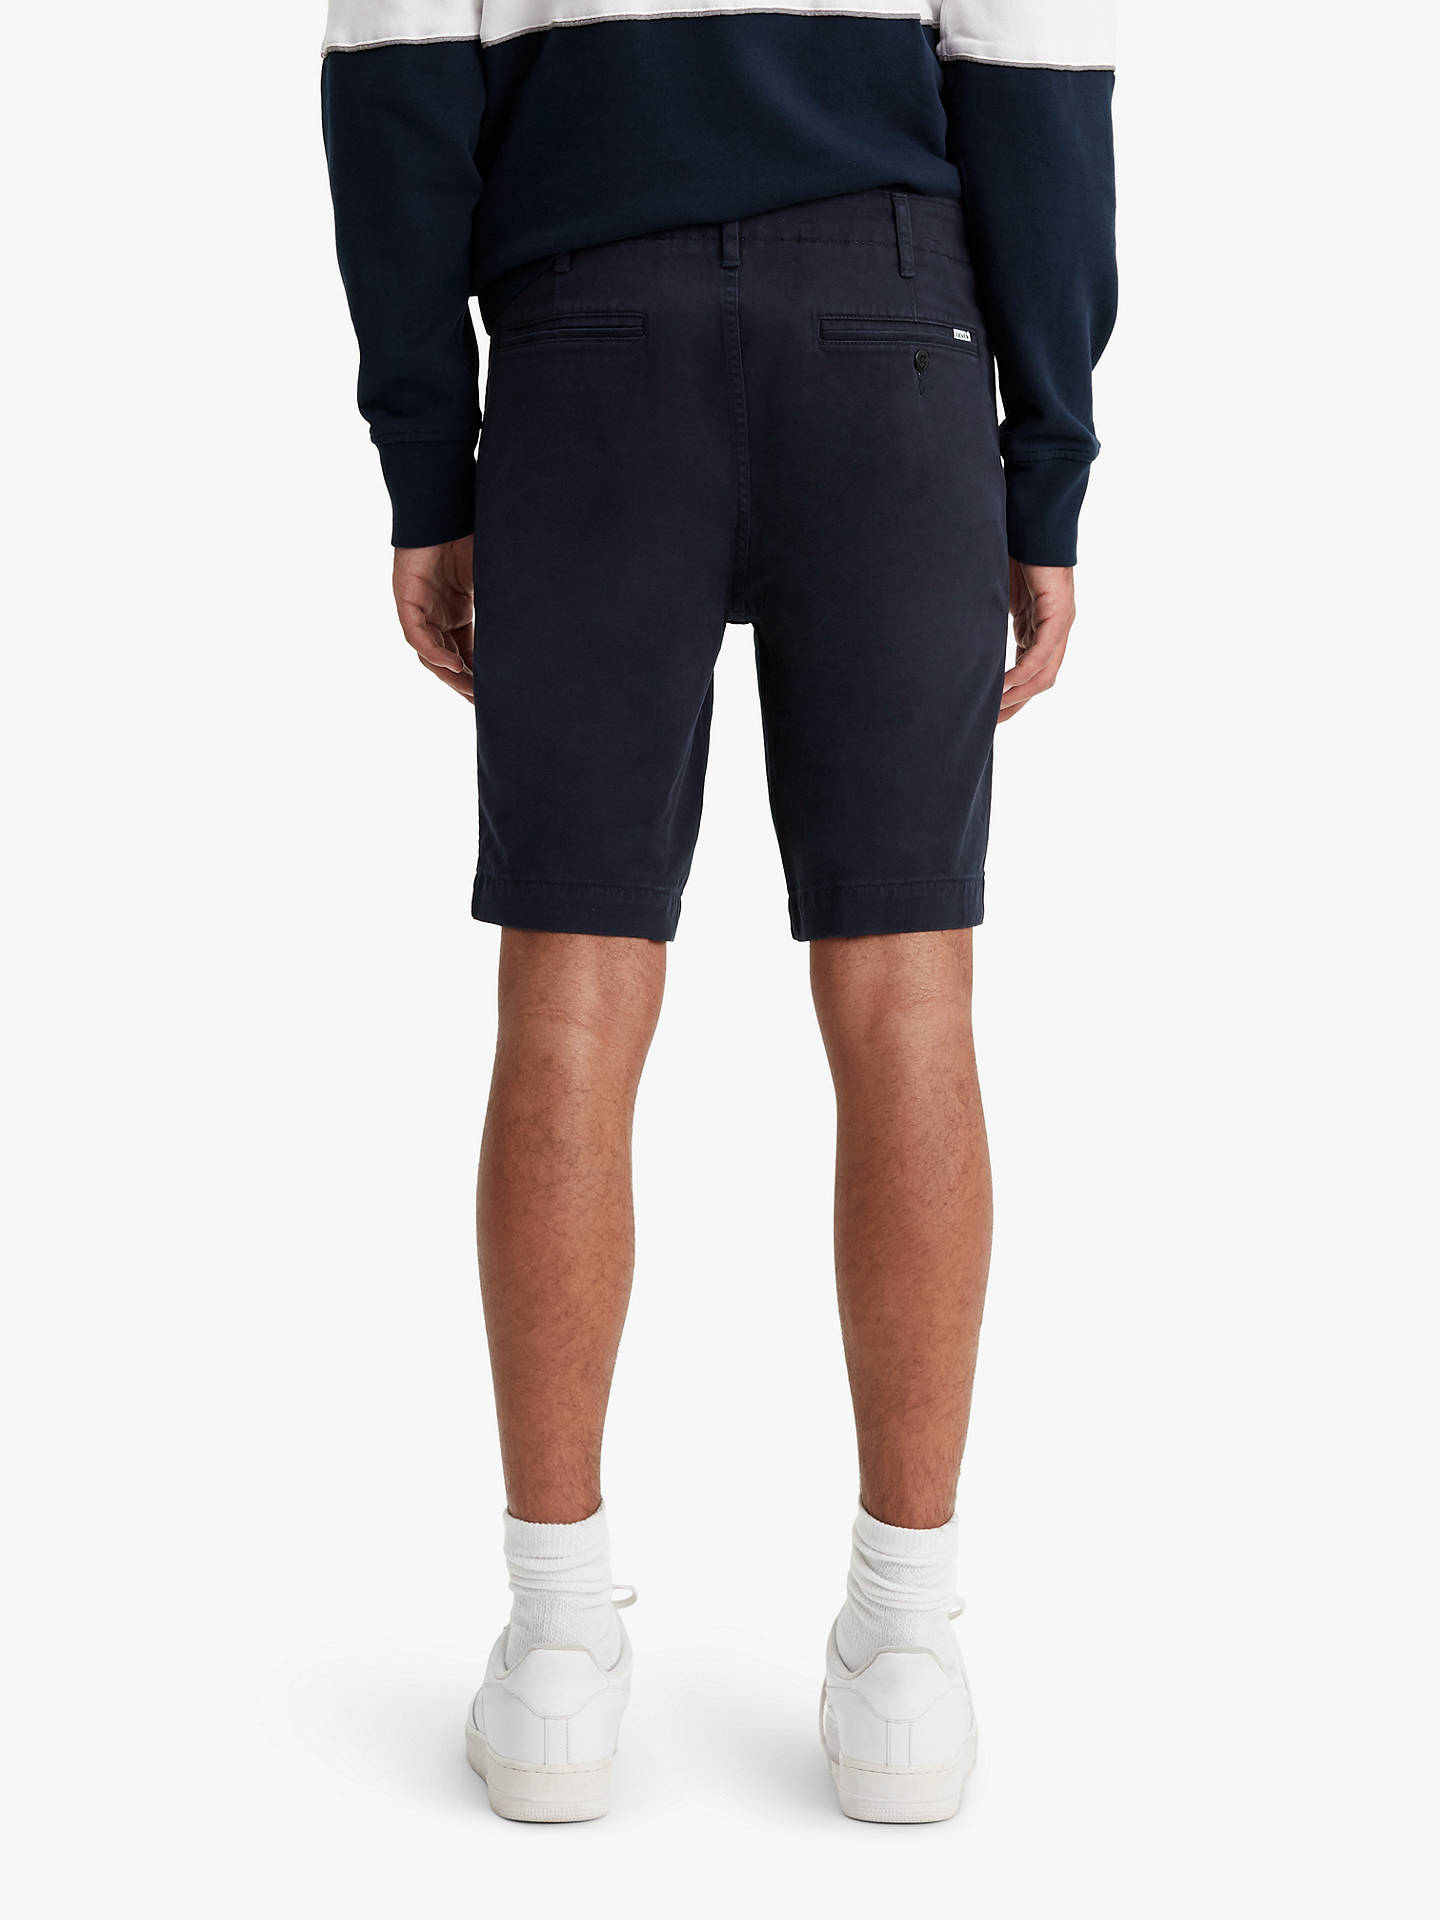 4755b837 ... Buy Levi's 502 Chino Shorts, Nightwatch Blue, 34R Online at  johnlewis.com